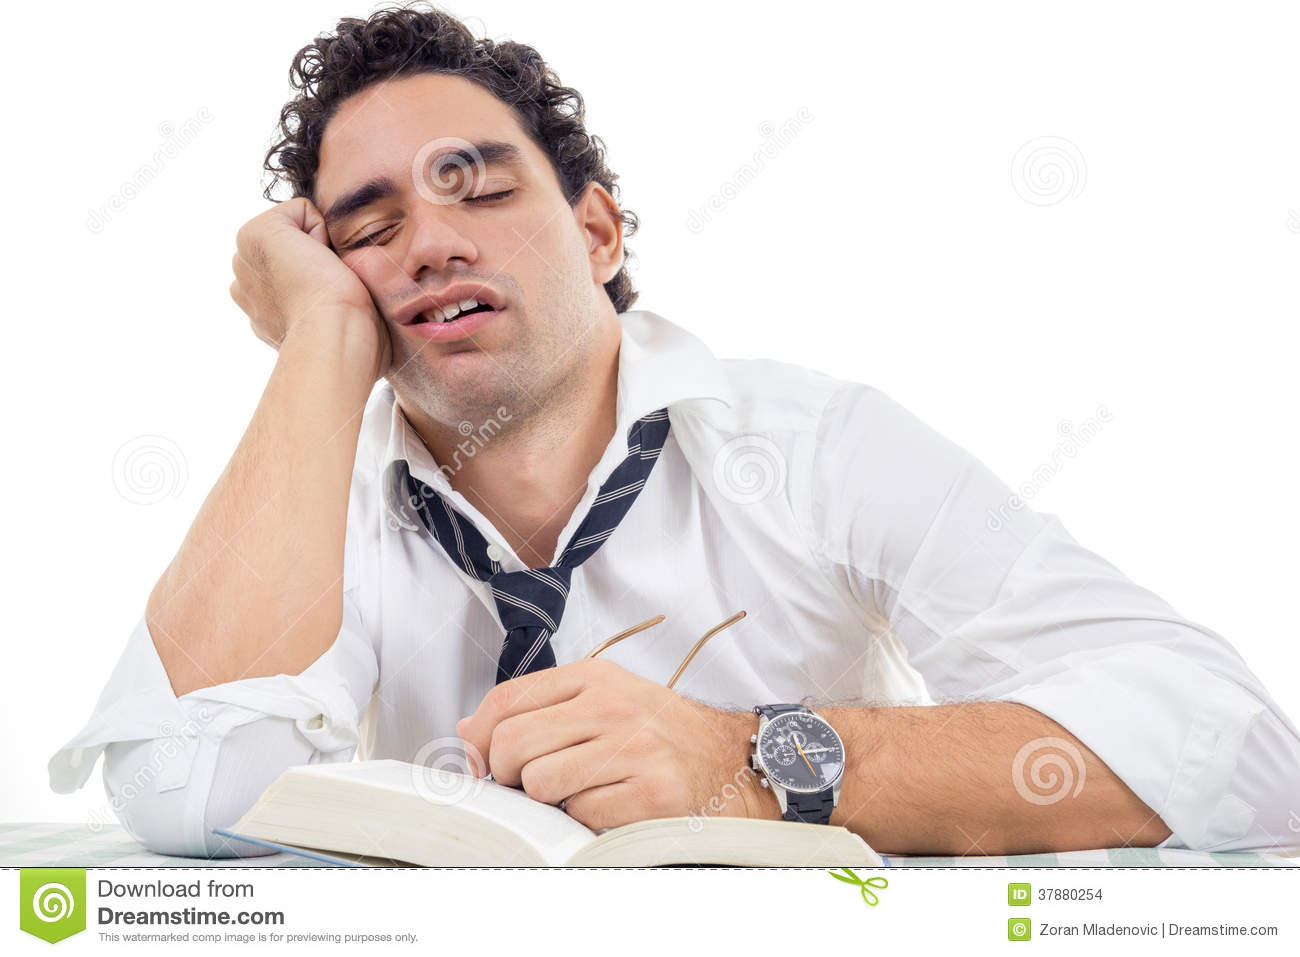 Sleepy Man With Glasses In White Shirt And Tie Sitting ...